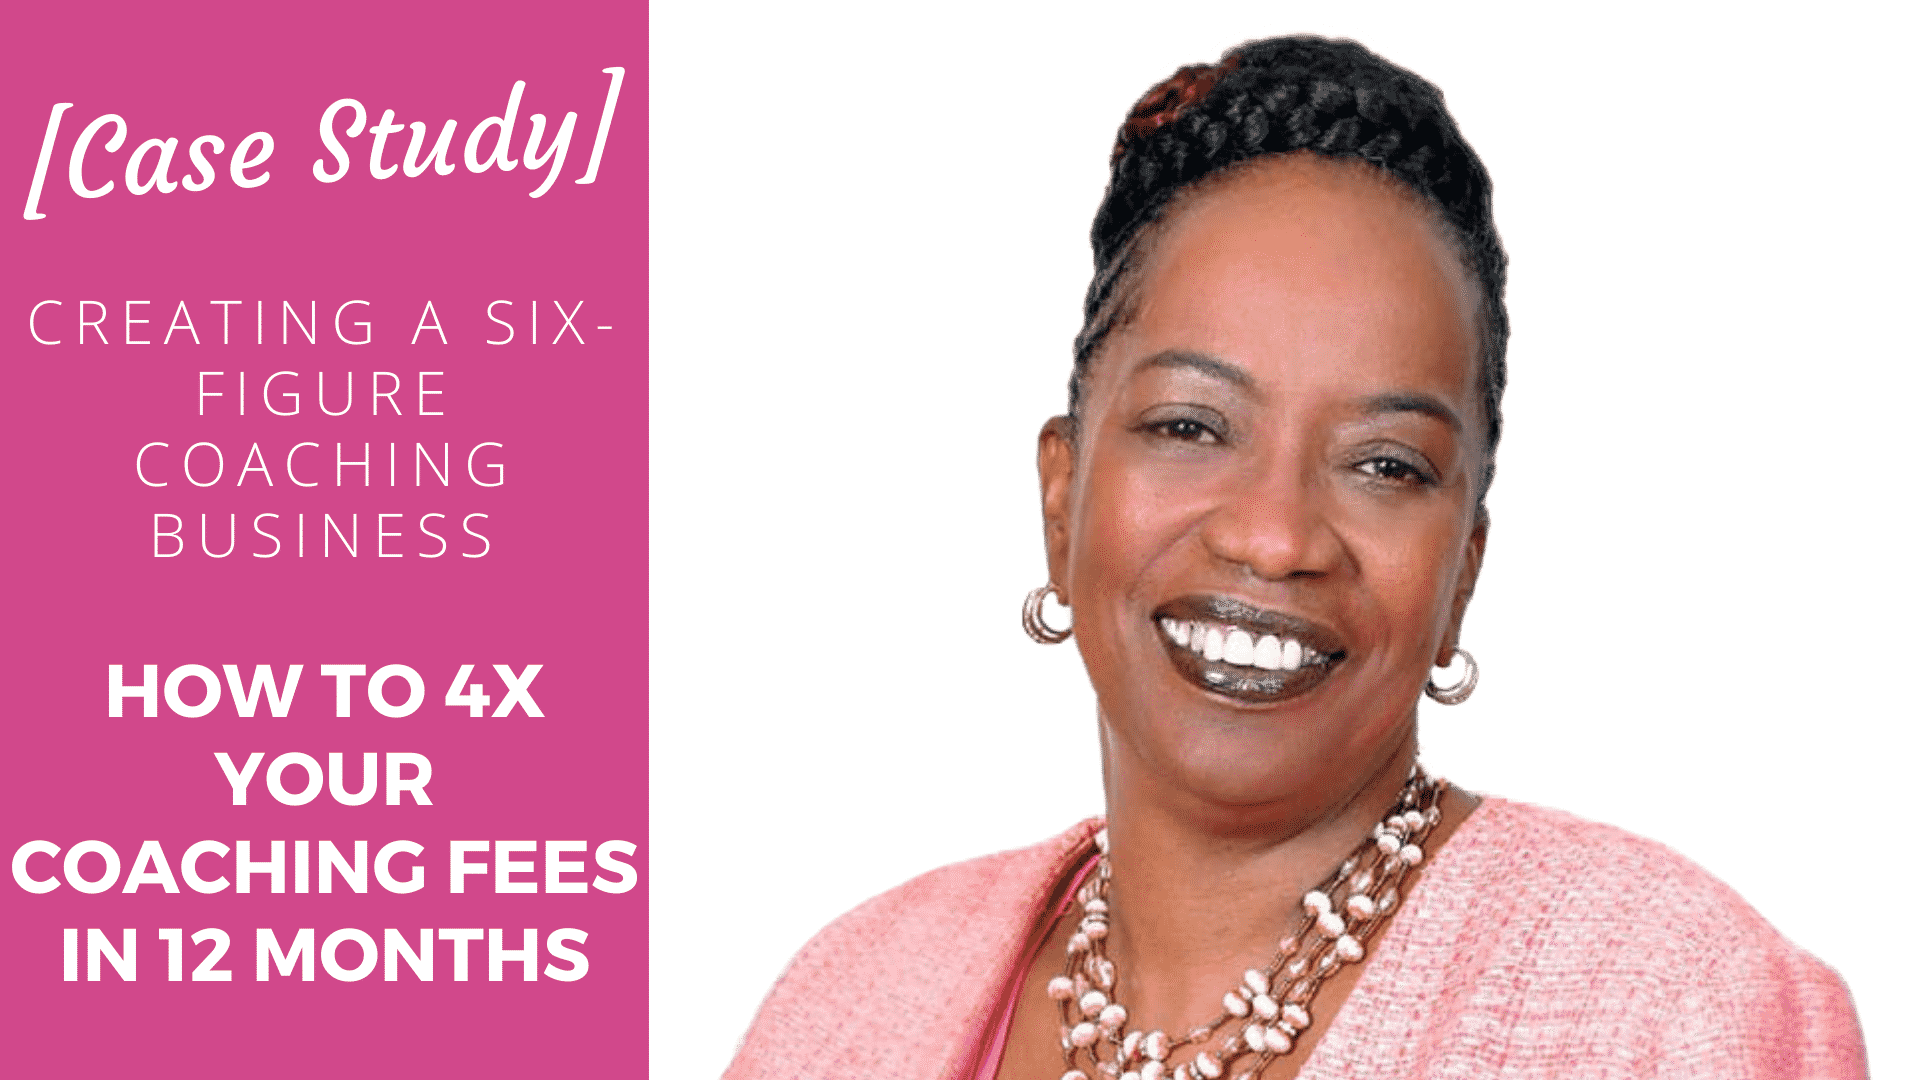 [Case Study] How to 4x Your Coaching Fees in 12 months